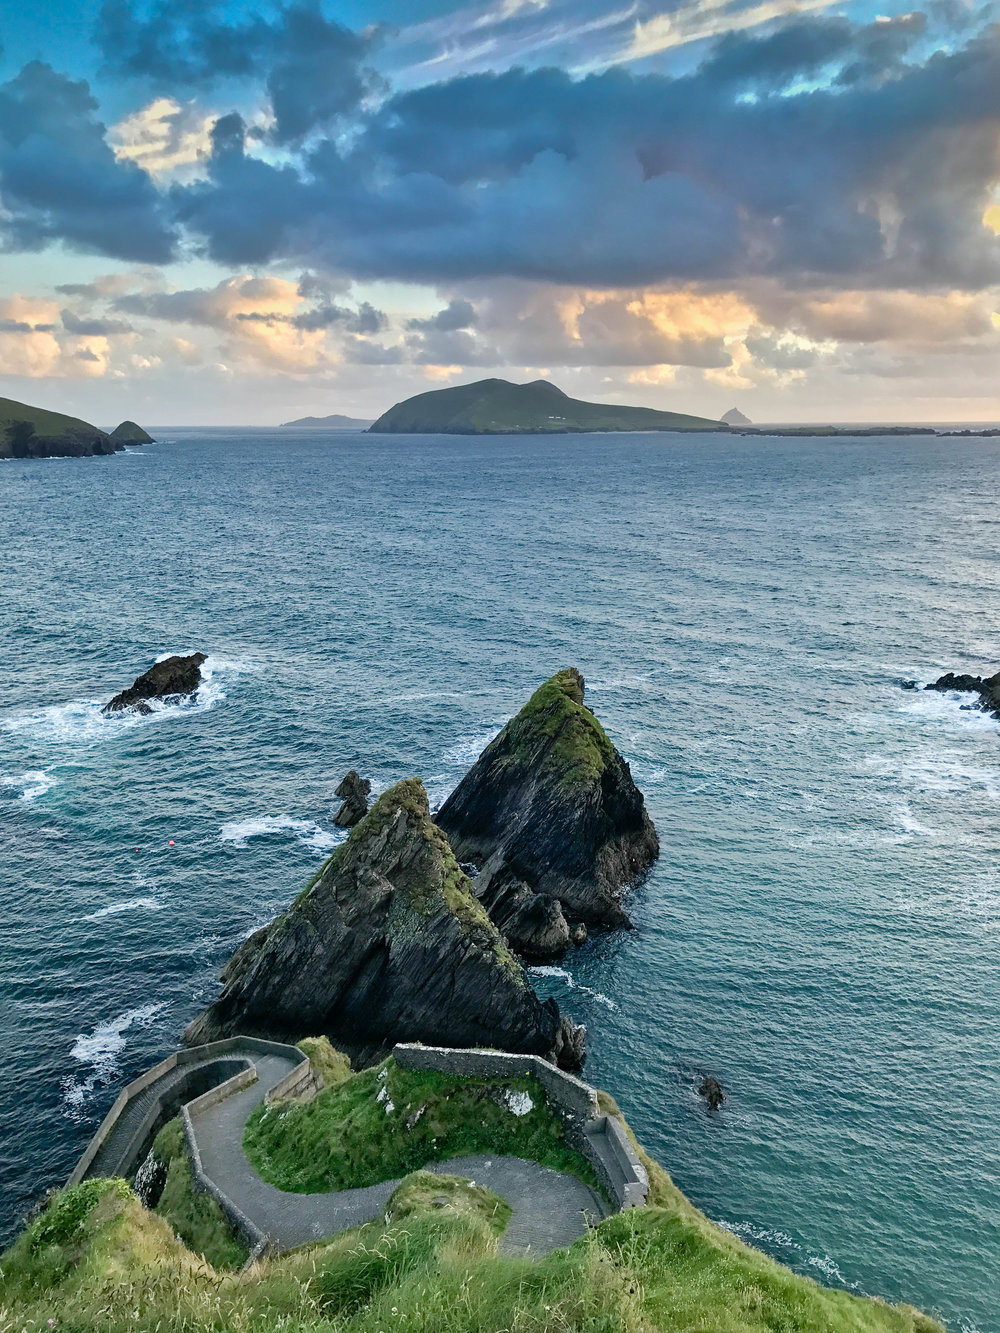 Dunquin Harbor, Ireland